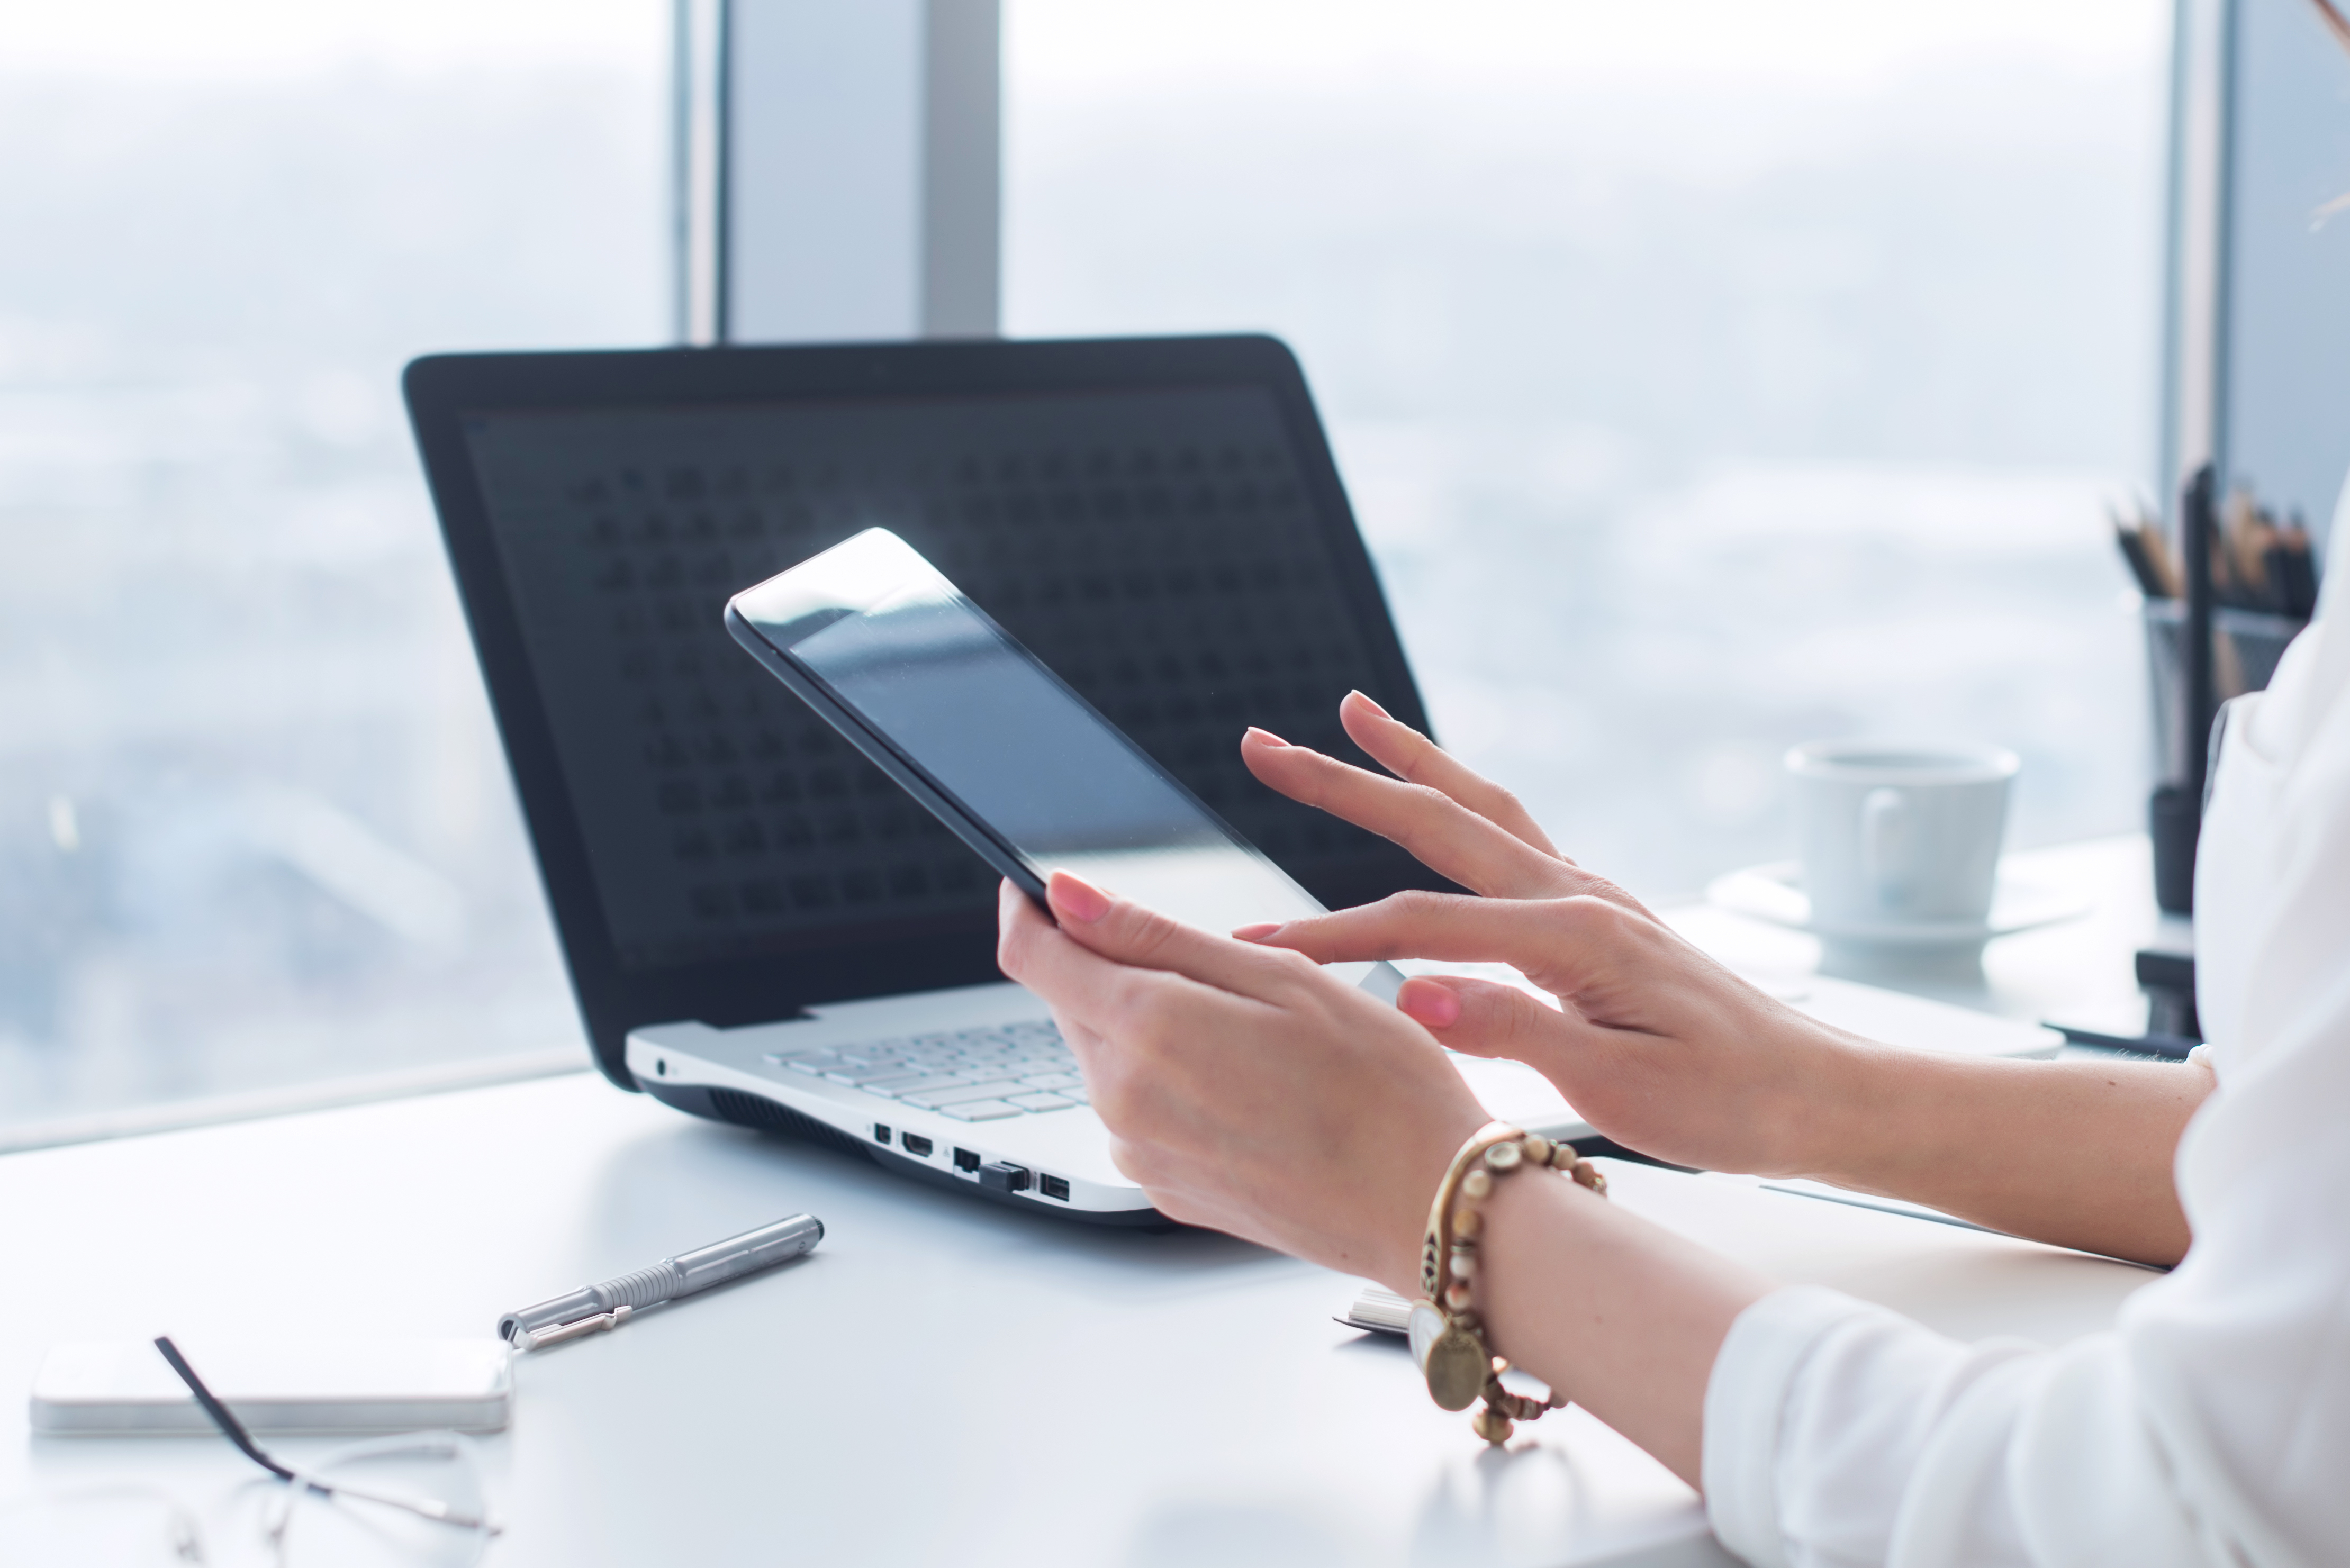 Is a Bring Your Own Device (BYOD) Policy Right for Your Business in 2018?